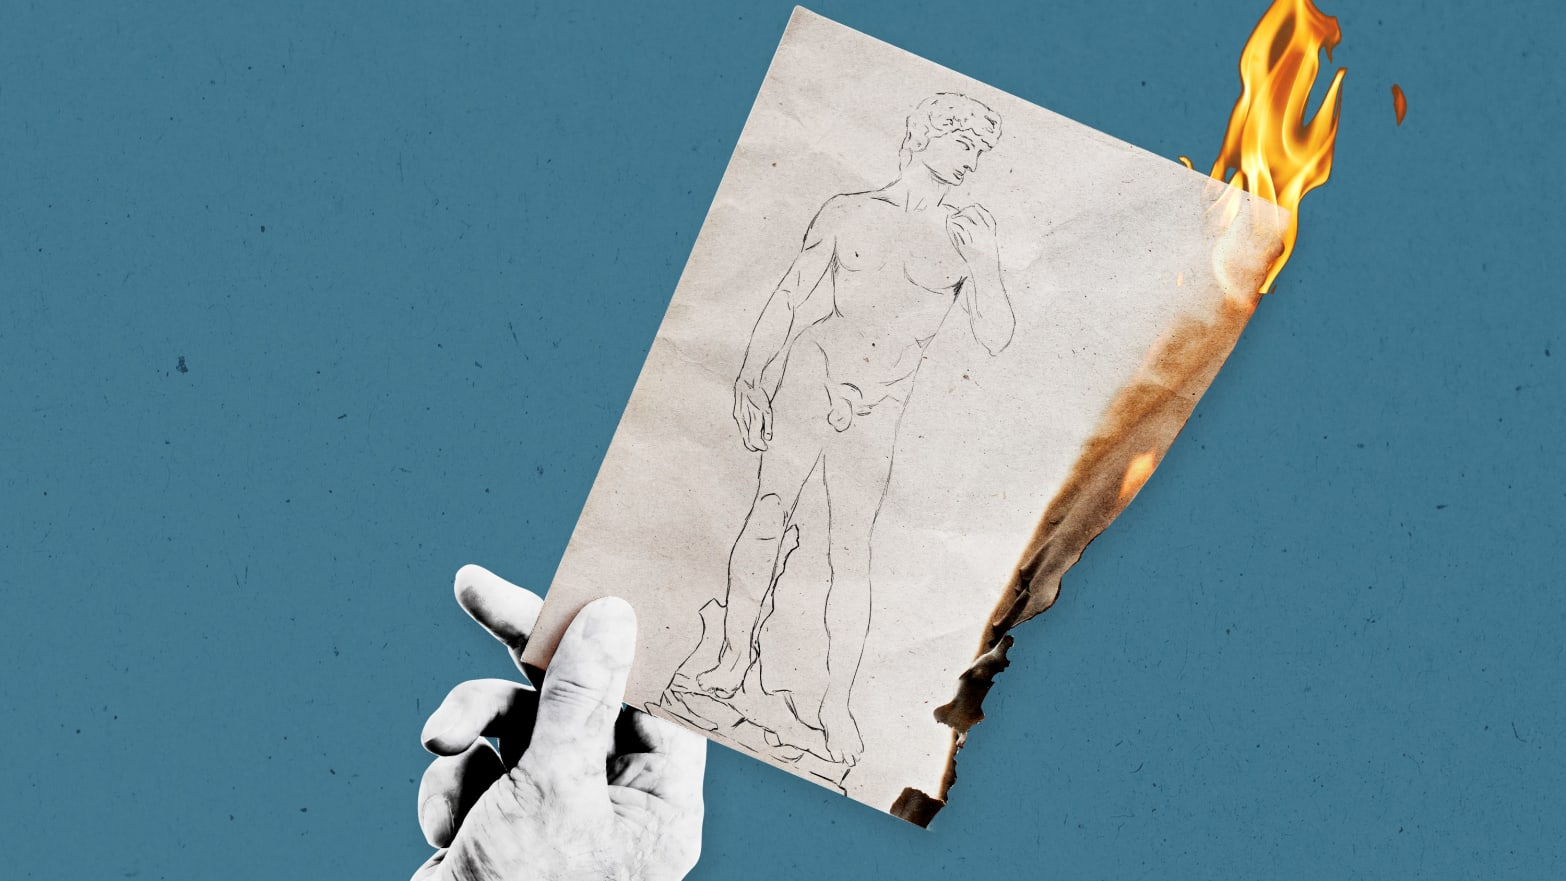 The Mystery of Why Michelangelo Burned His Sketches Just Before He Died